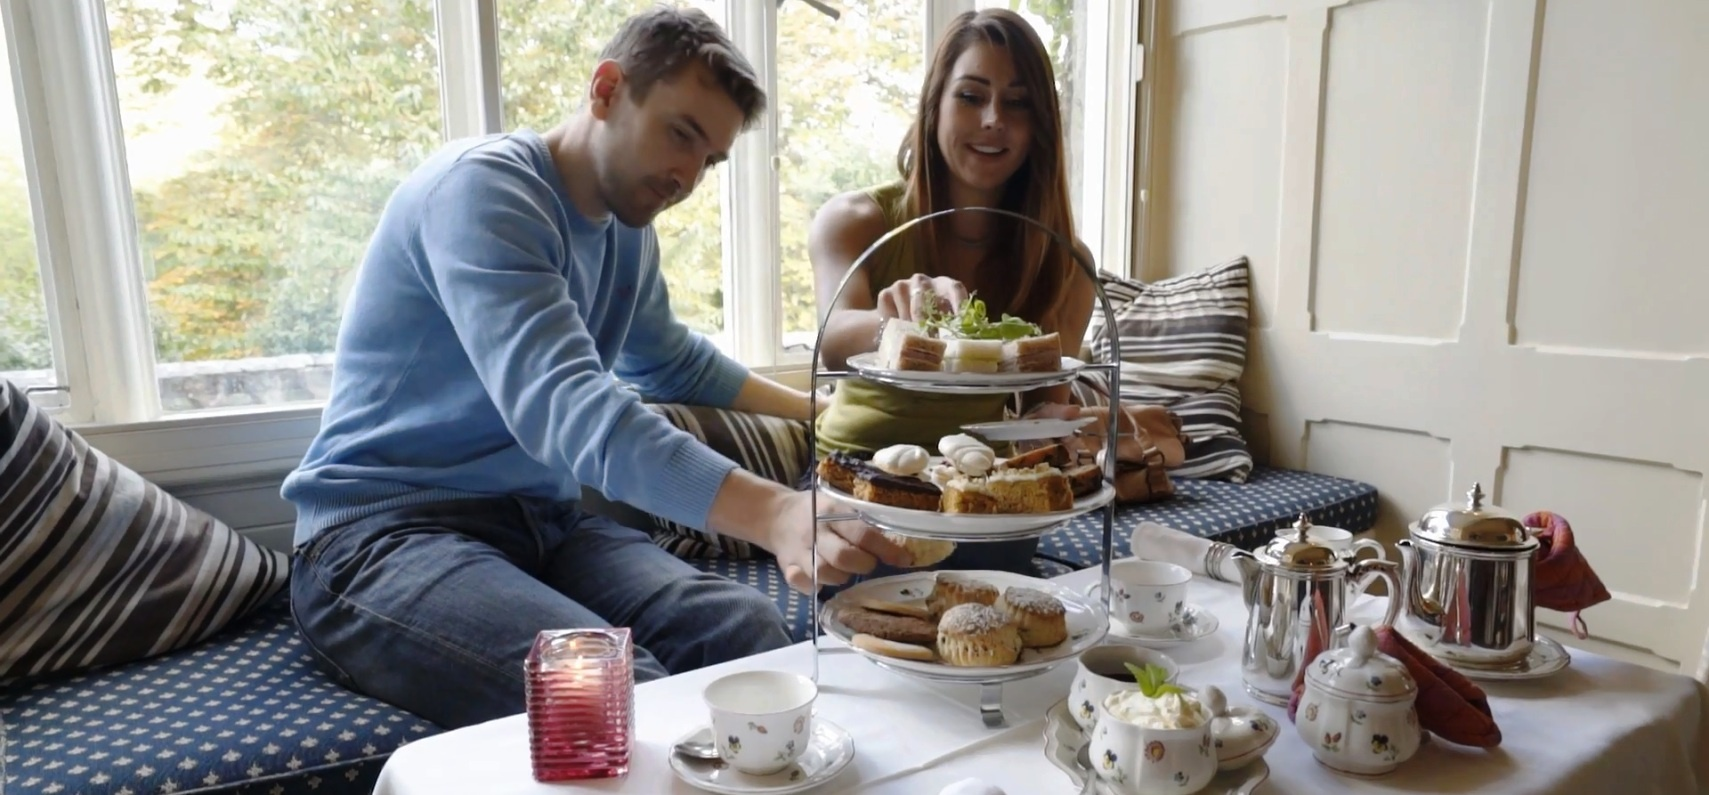 Afternoon Tea for Two in Snowdonia National Park-1